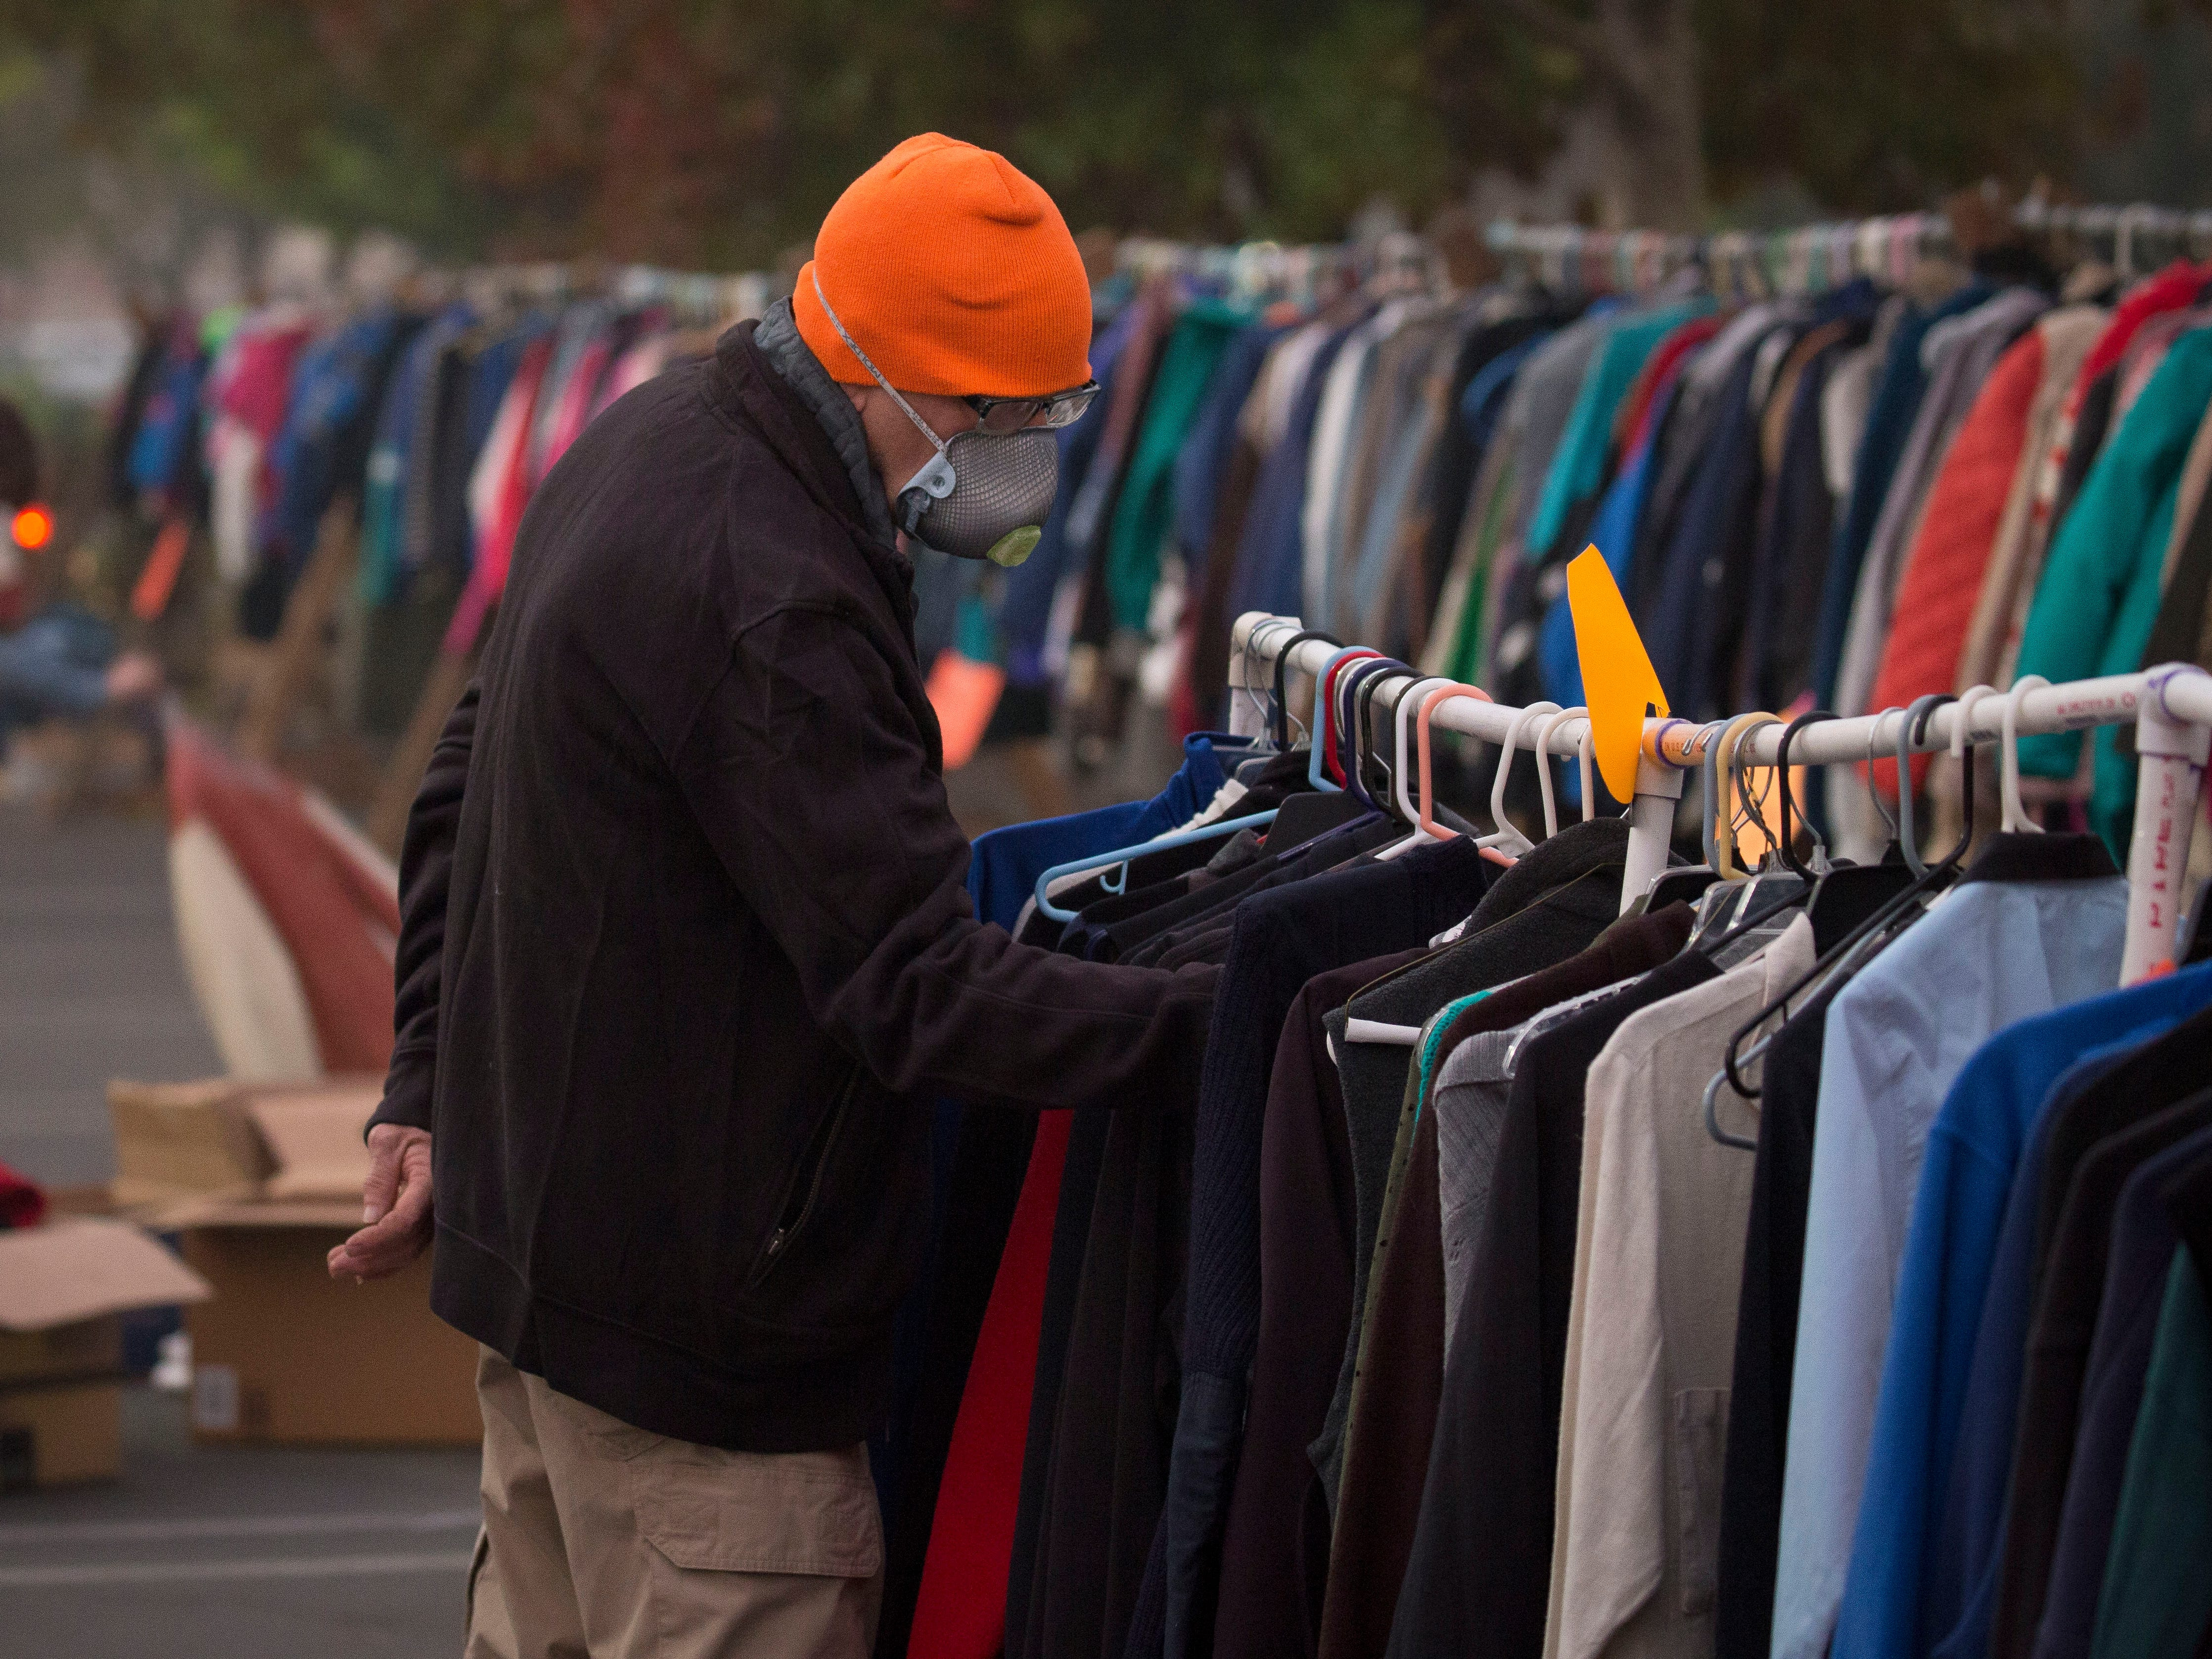 People look through clothing and other items in front of the old Toys 'R Us building where a make-shift camp has been set up to help fire victims of the Camp Fire.(Kelly Jordan / USA TODAY NETWORK) (Via OlyDrop)